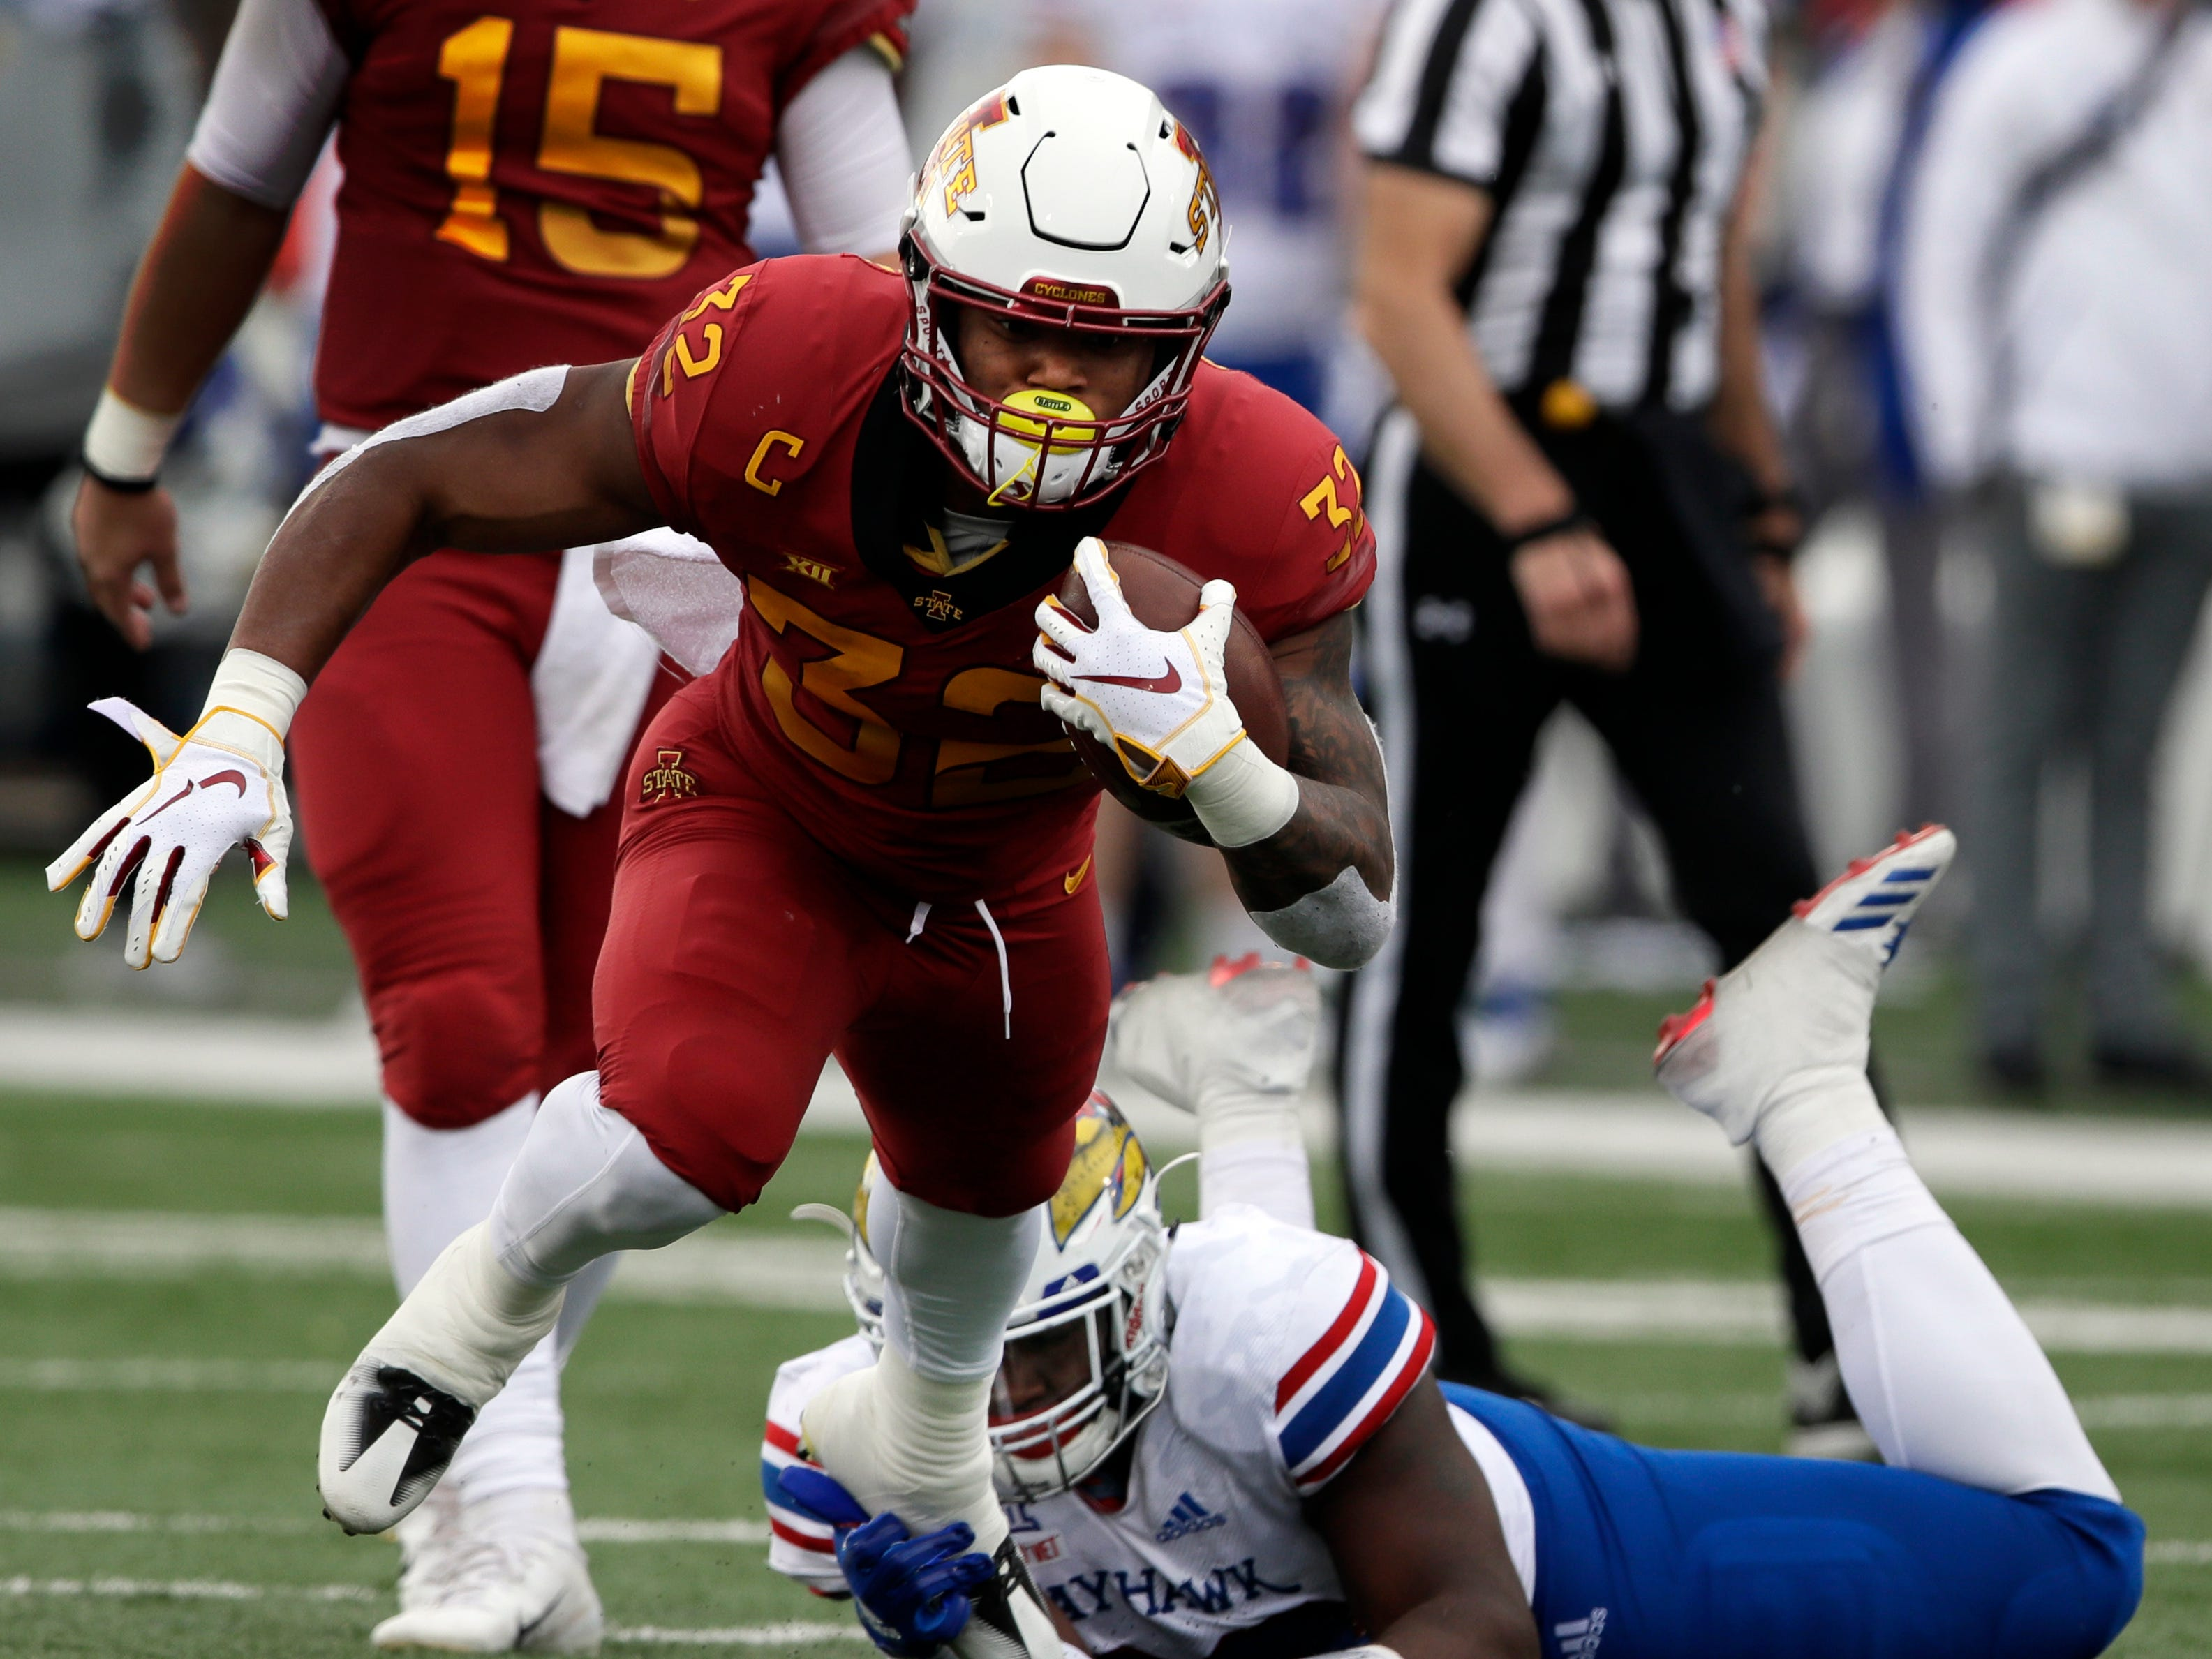 44. David Montgomery, RB, Iowa State: A grind-it-out workhorse for the Cyclones, Montgomery runs with physicality, while also providing the offense with a receiving threat out of the backfield.